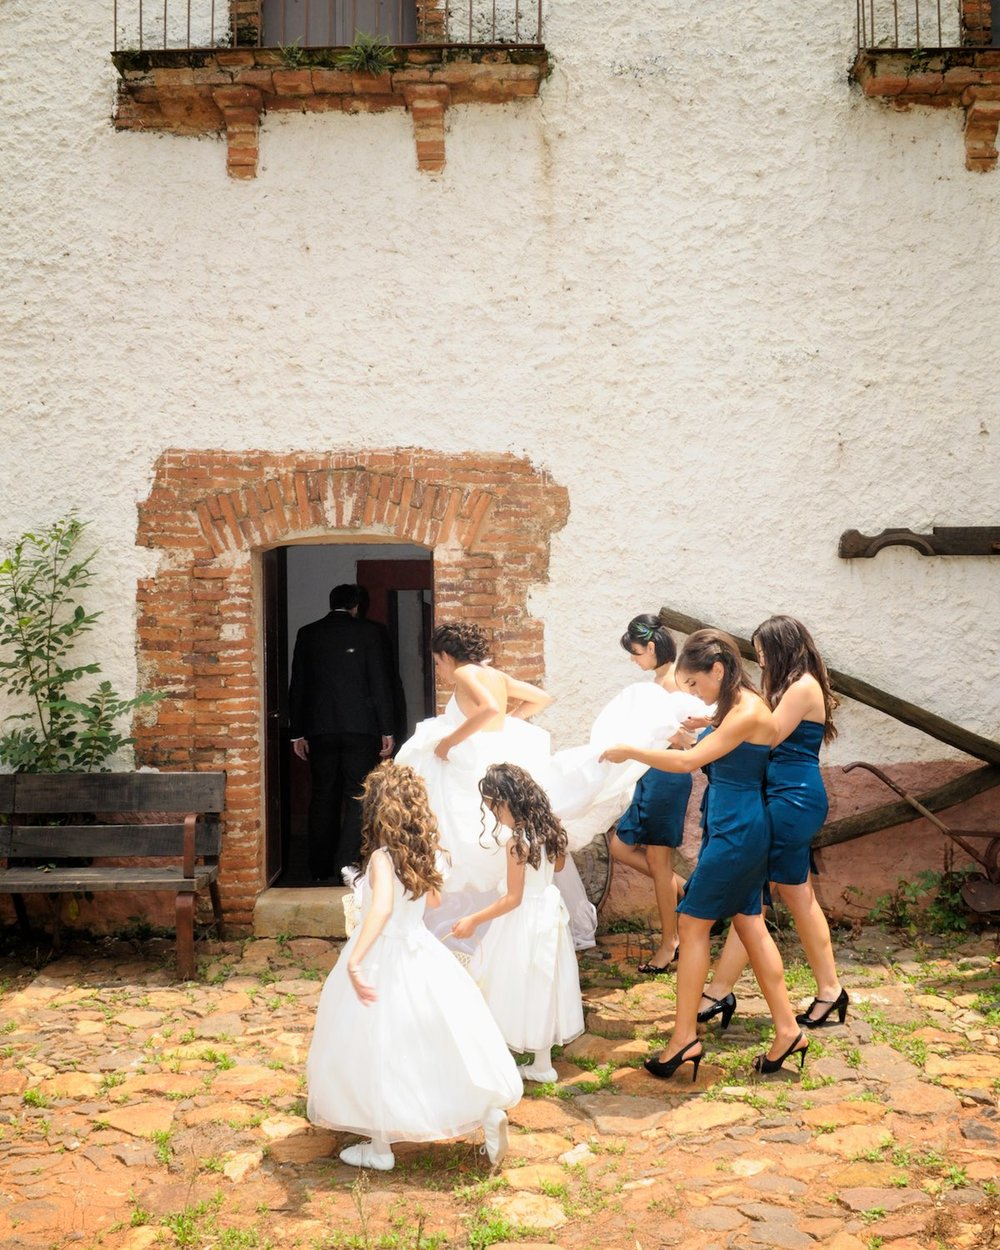 weddings-michal-pfeil-06.jpg